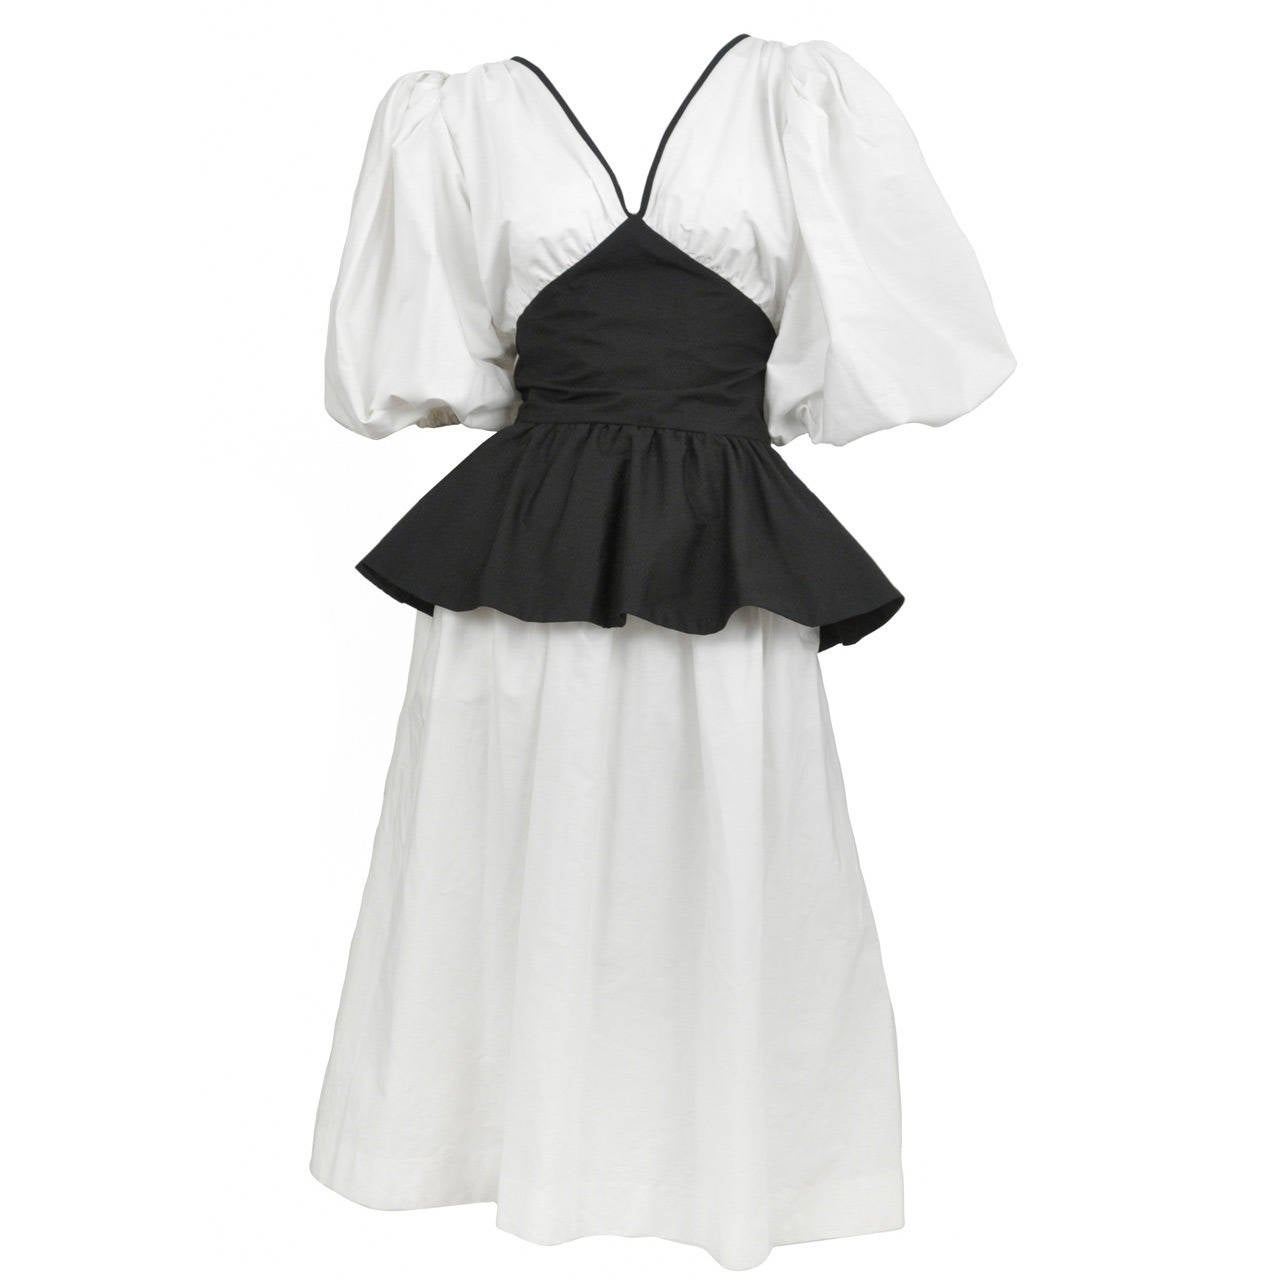 Yves Saint Laurent Black & White Peasant Dress